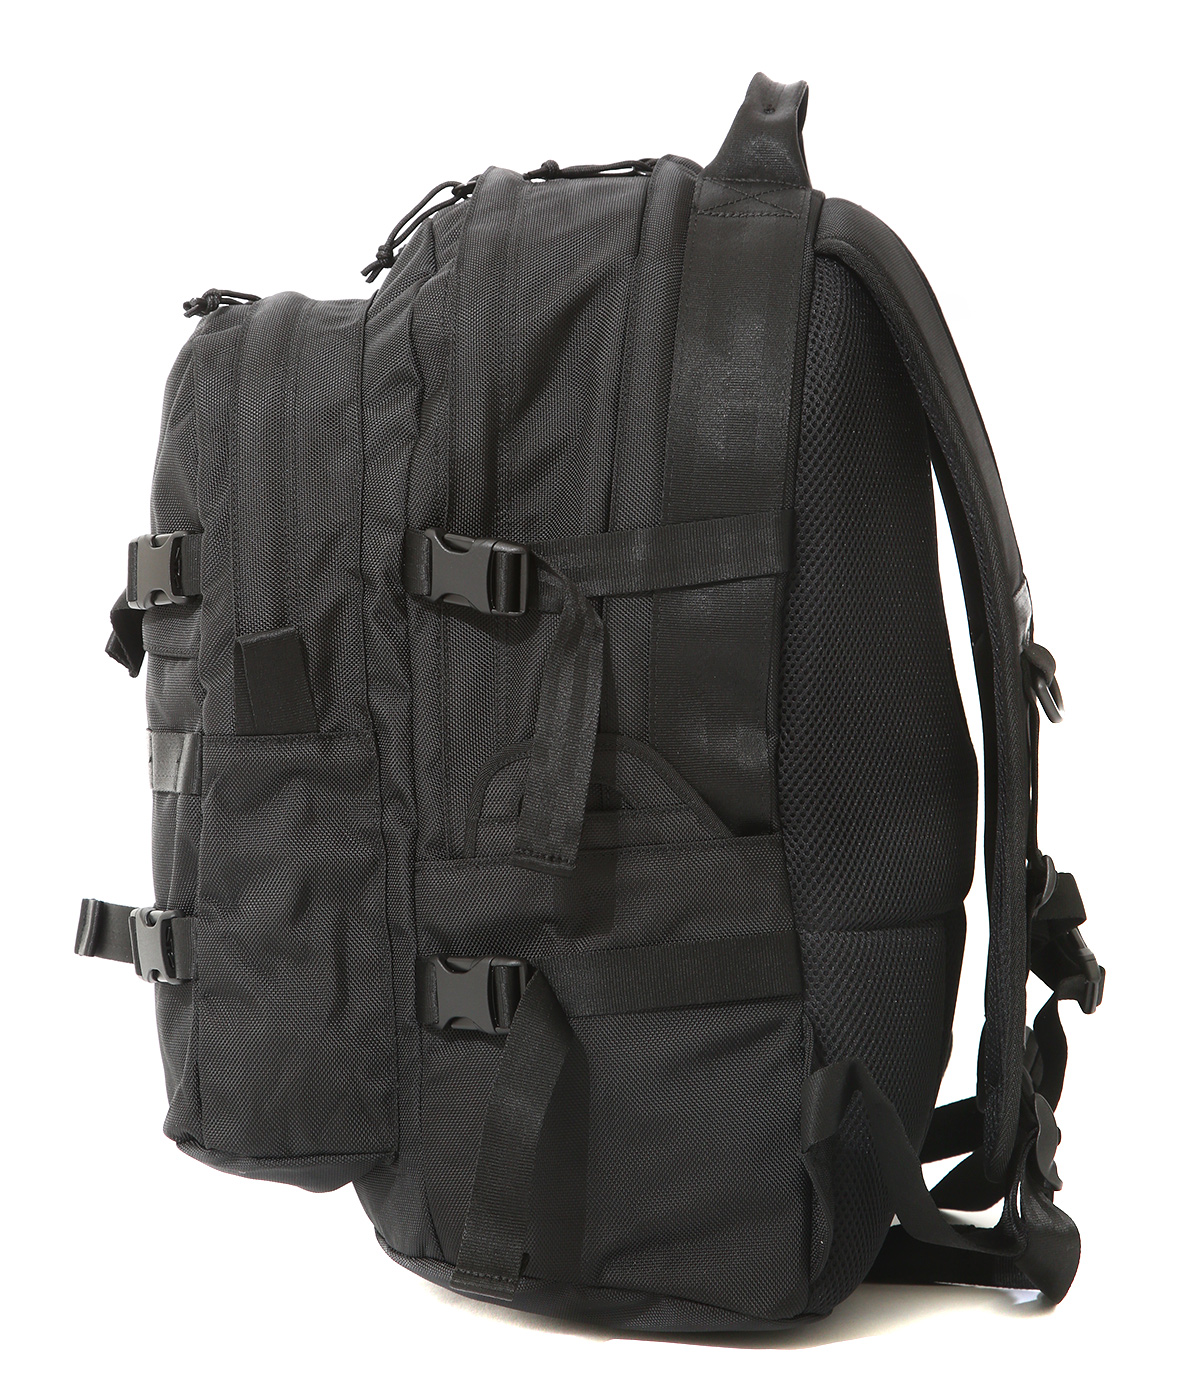 CARRIER PACK 1680D 2 BLK